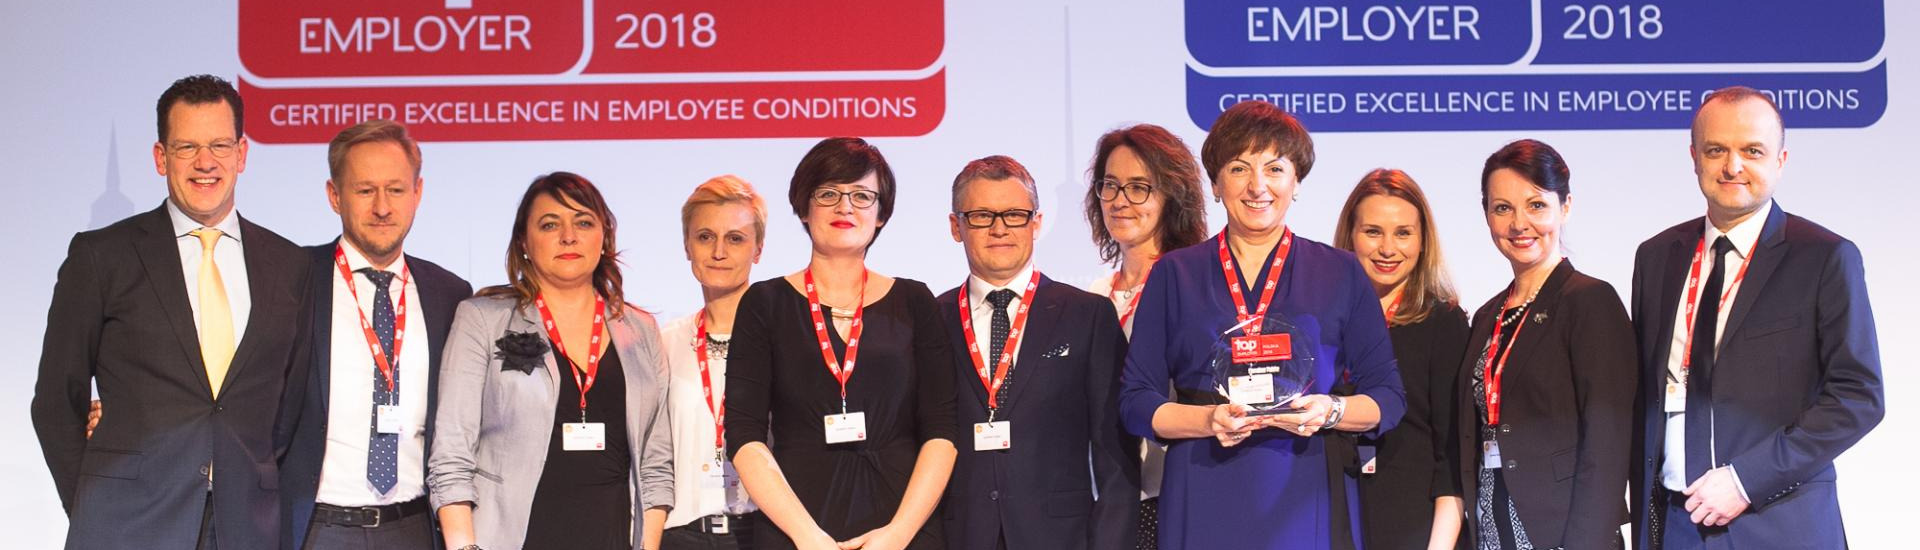 Carrefour Poland for the second time with the certificate Top Employer